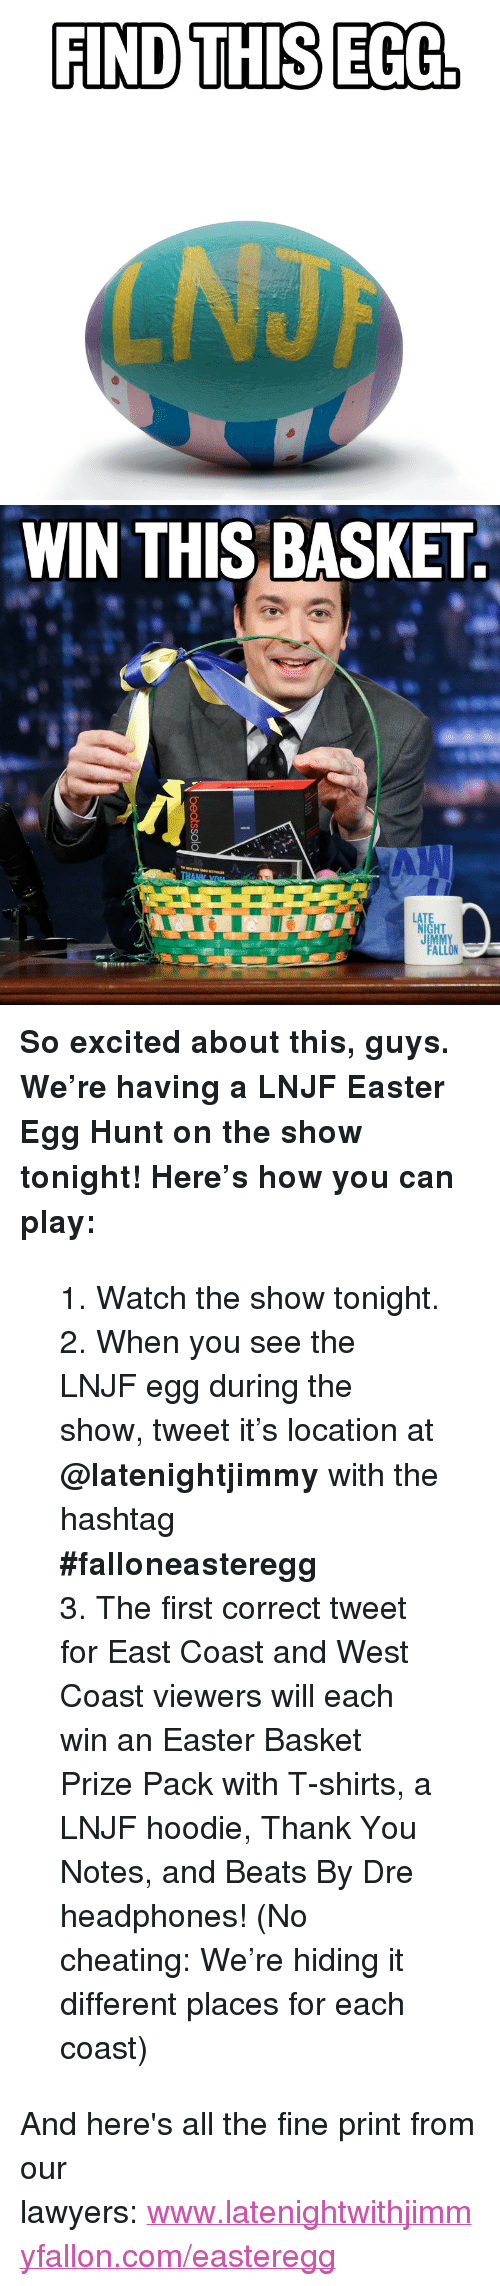 "Beats by Dre: FIND THIS EGC   WIN THIS BASKET  LAT  NIGHT  JIMM  FALLON <p><strong>So excited about this, guys. We&rsquo;re having a LNJF Easter Egg Hunt on the show tonight! Here&rsquo;s how you can play:</strong></p> <blockquote> <p>1. Watch the show tonight.</p> <p>2. When you see the LNJF egg during the show, tweet it&rsquo;s location at <strong>@latenightjimmy</strong> with the hashtag <strong>#falloneasteregg</strong></p> <p>3. The first correct tweet for East Coast and West Coast viewers will each win an Easter Basket Prize Pack with T-shirts, a LNJF hoodie, Thank You Notes, and Beats By Dre headphones! (No cheating: We&rsquo;re hiding it different places for each coast)</p>  </blockquote> <p></p> <p>And here's all the fine print from our lawyers: <a href=""http://www.latenightwithjimmyfallon.com/easteregg"" target=""_blank"">www.latenightwithjimmyfallon.com/easteregg</a></p>"